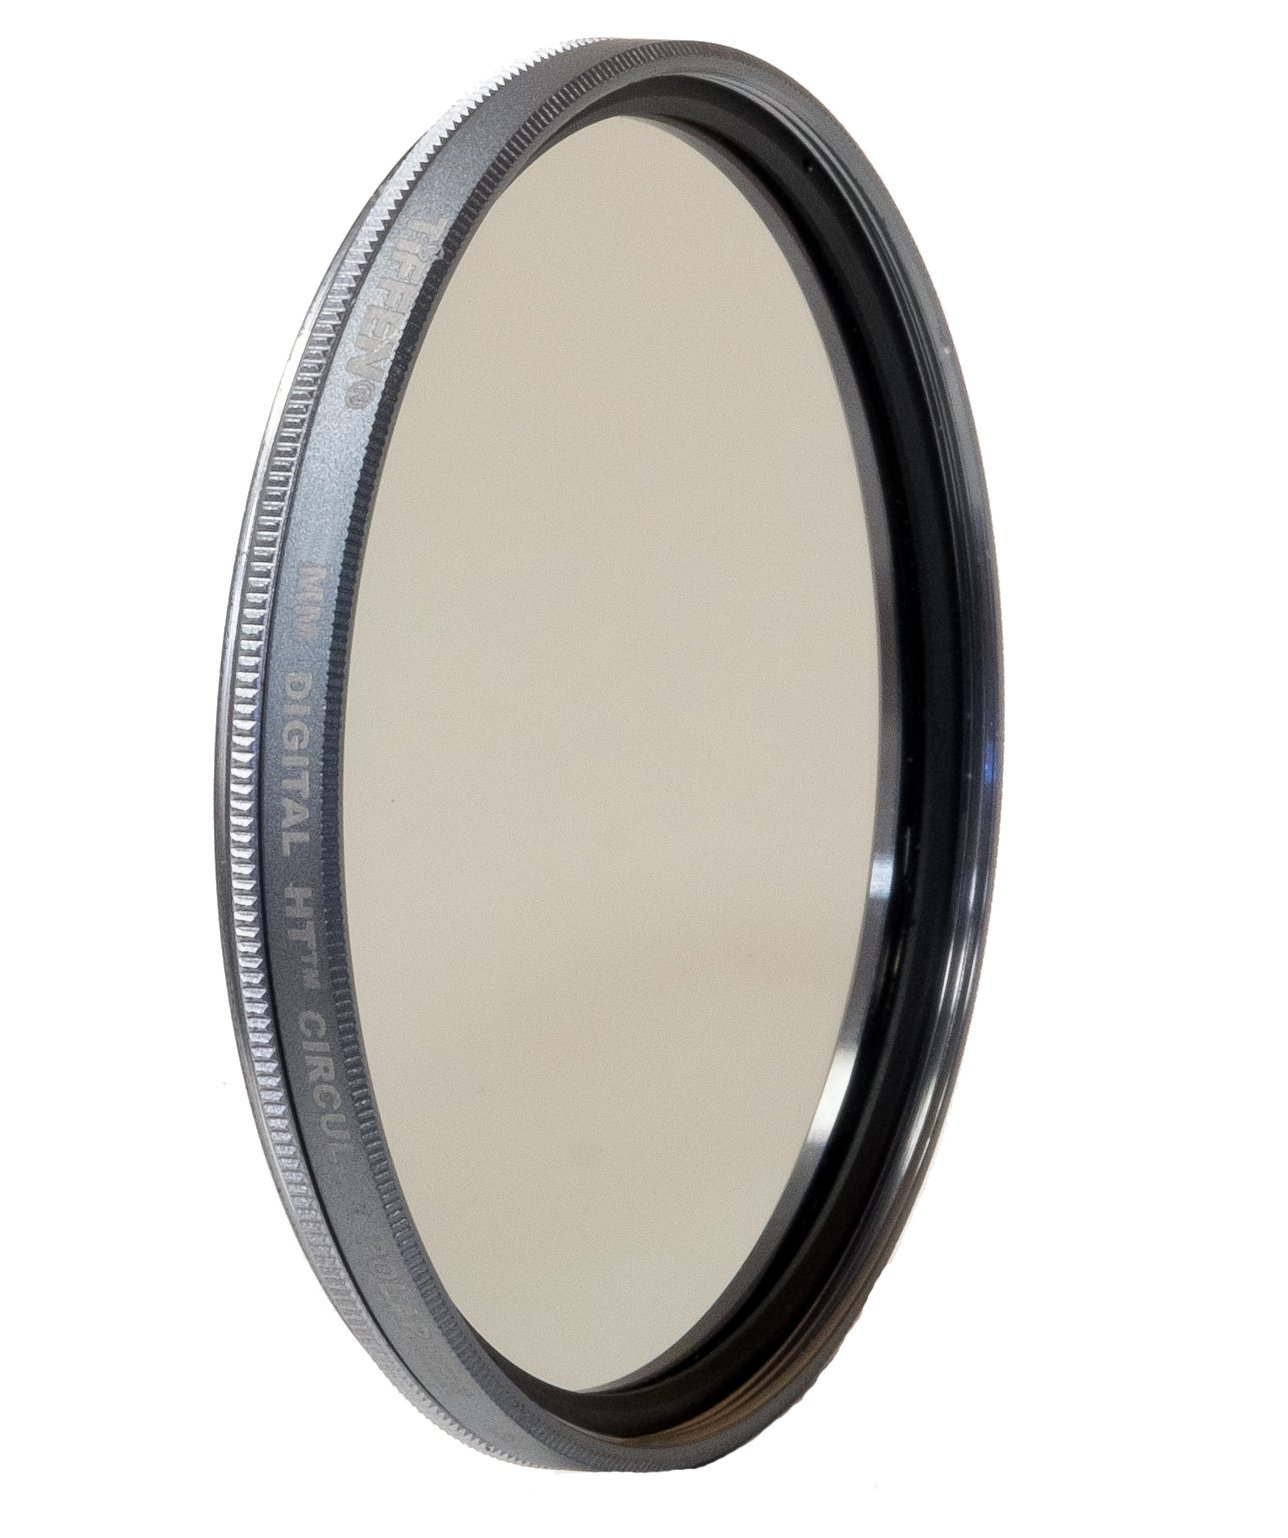 Tiffen 52mm Digital HT Multi Coated Circular Polarizer by Tiffen